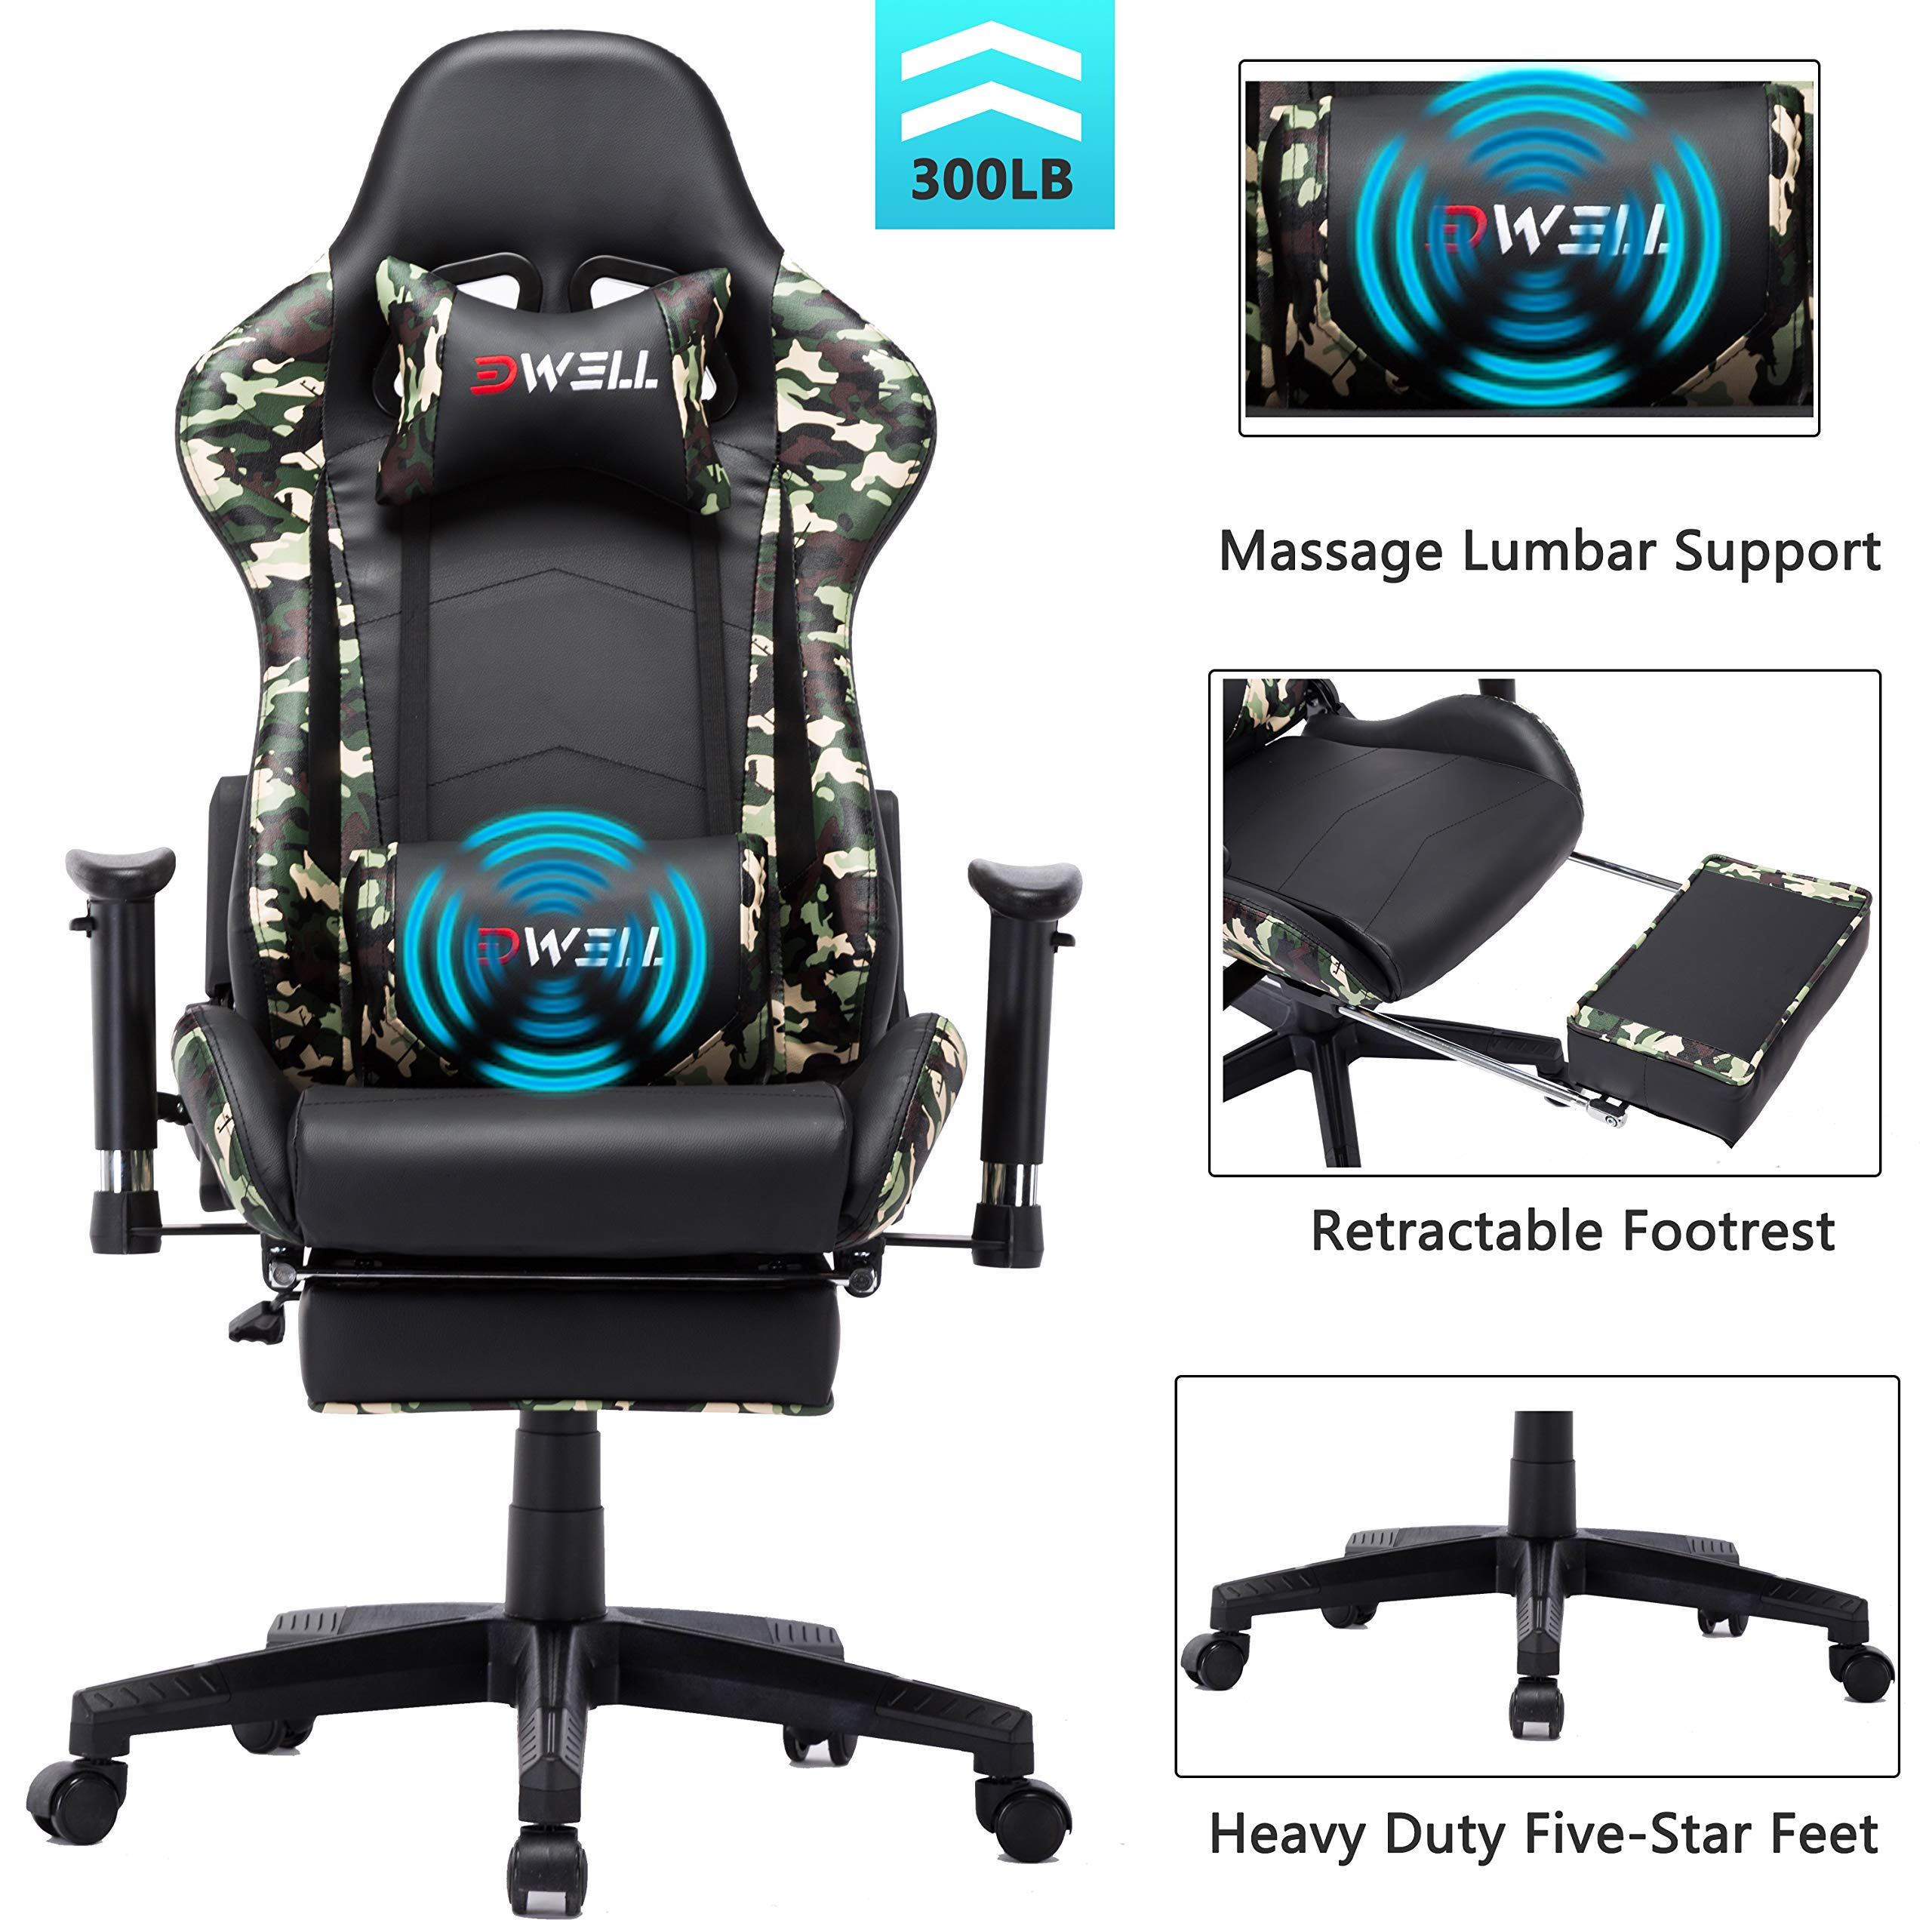 EDWELL Ergonomic Gaming Chair with Headrest and Lumbar Massage Support,Racing Style PC Computer Chair Height Adjustable Swivel with Retractable Footrest Executive Office Chair (Camo) by EDWELL